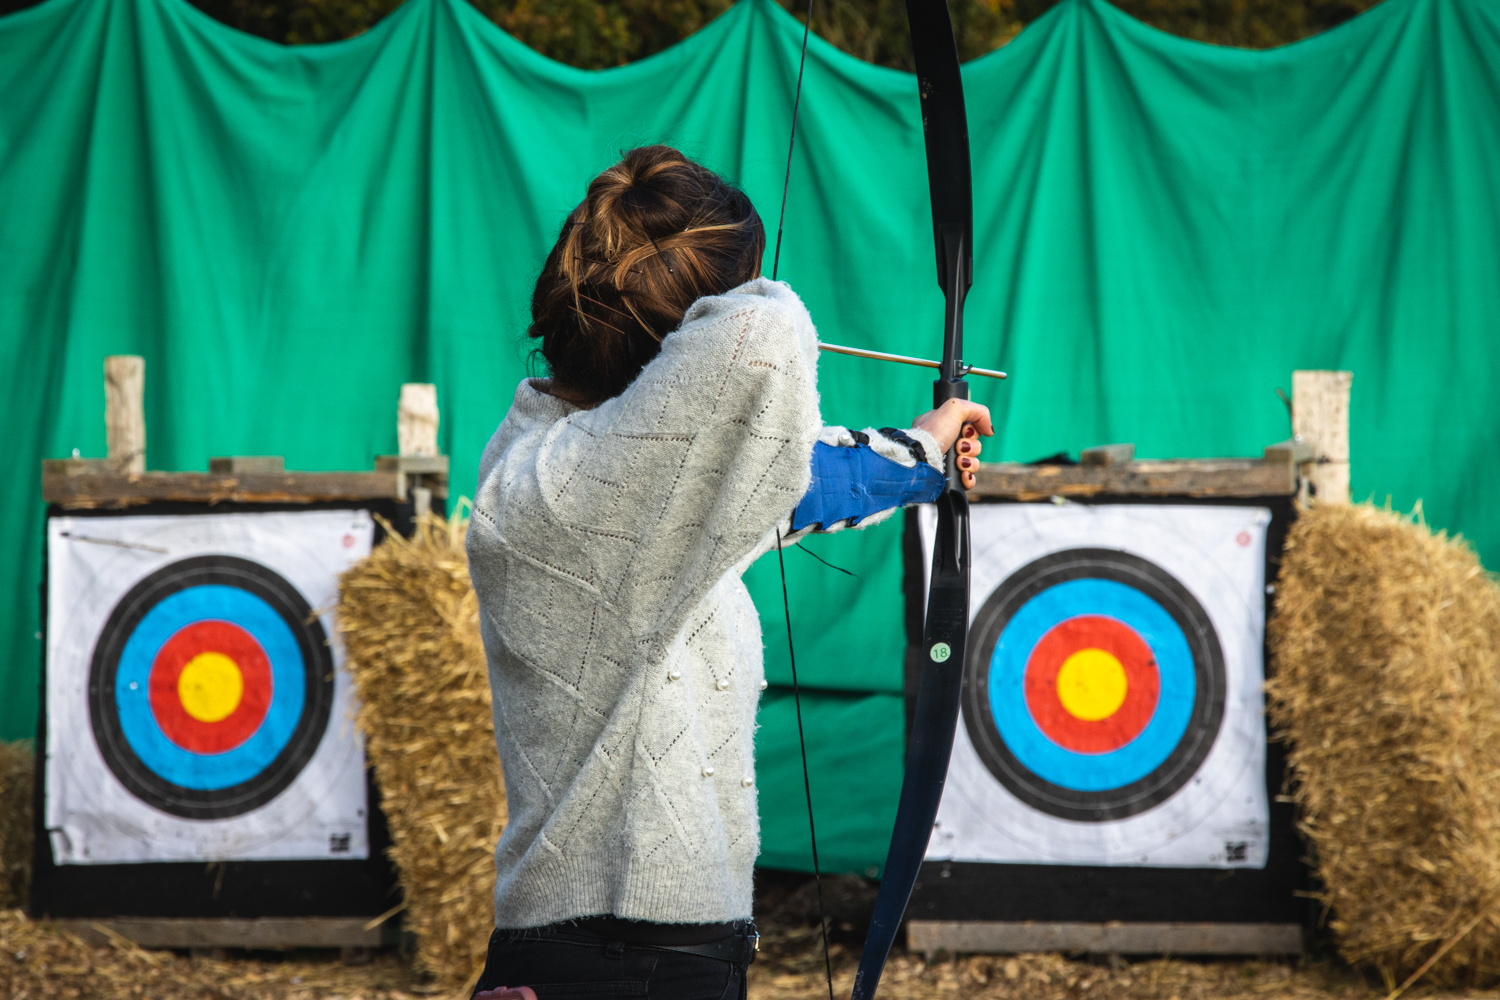 A Mother enjoying a winter archery session with her family.